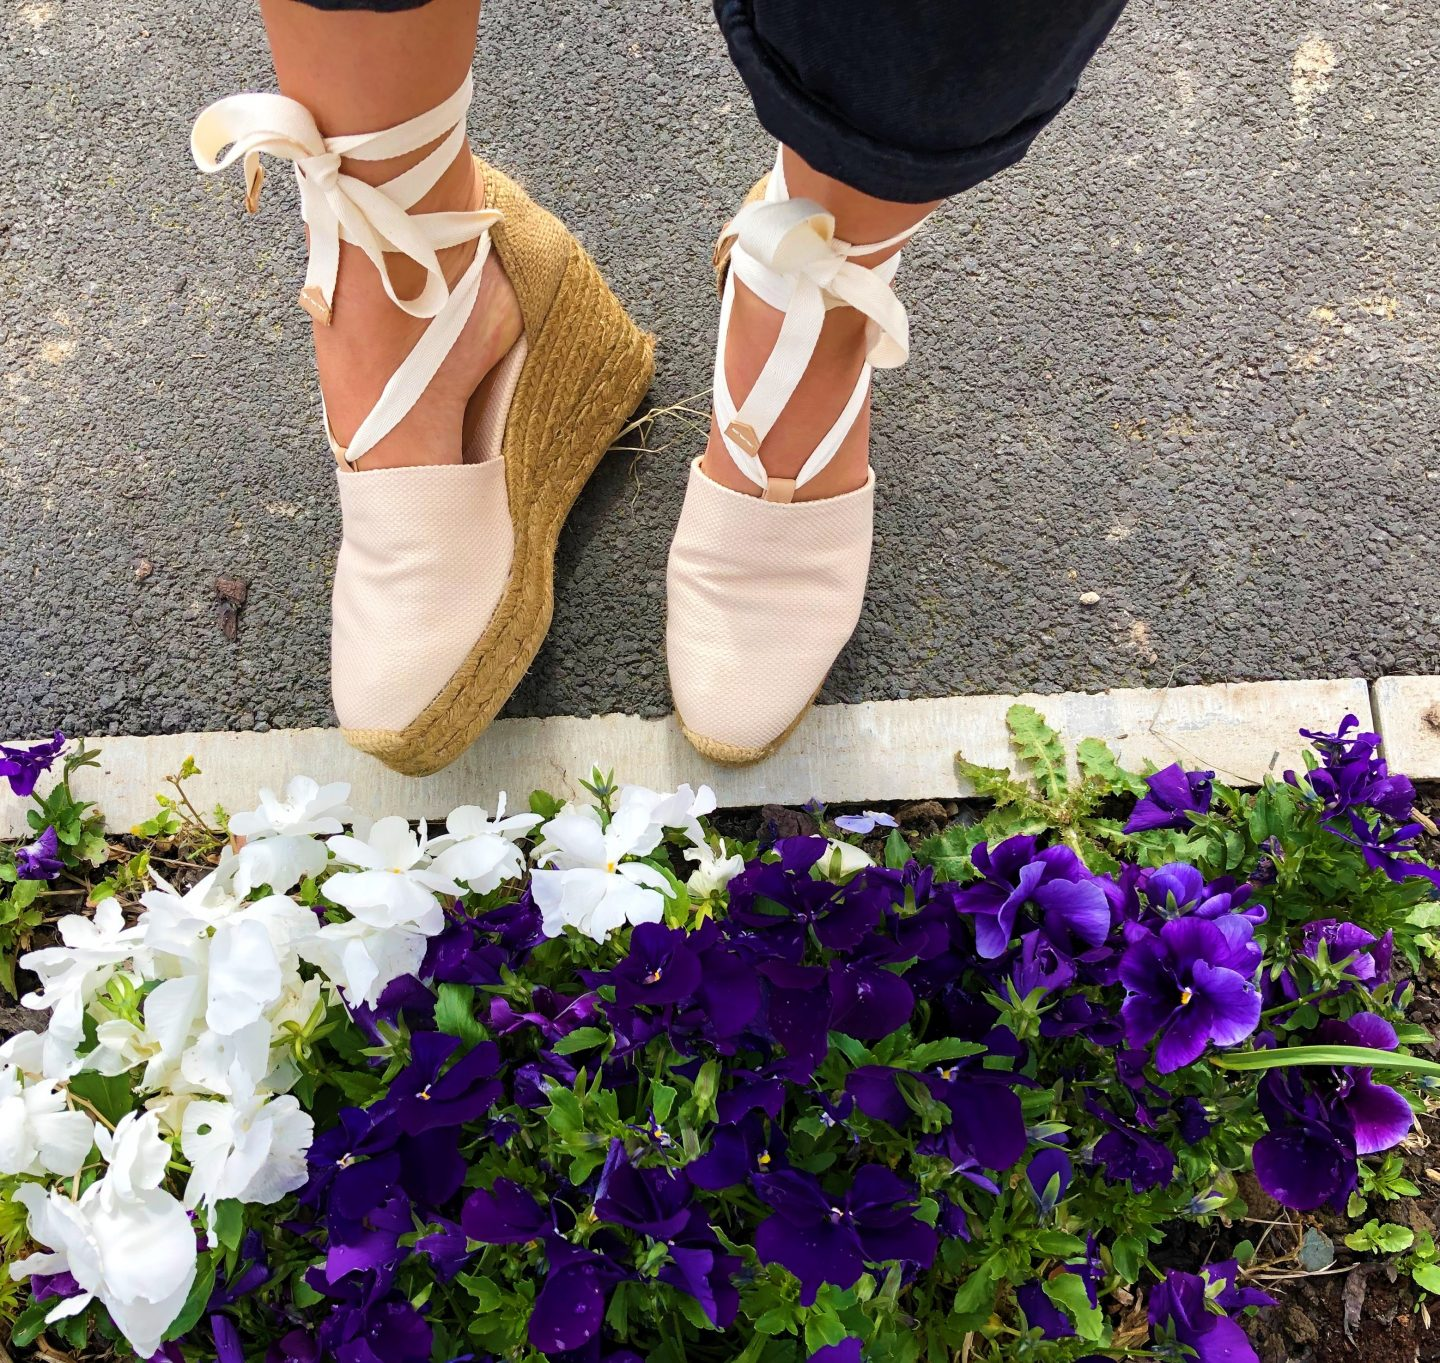 Cream Castañer espadrilles in front of a garden full of pansies